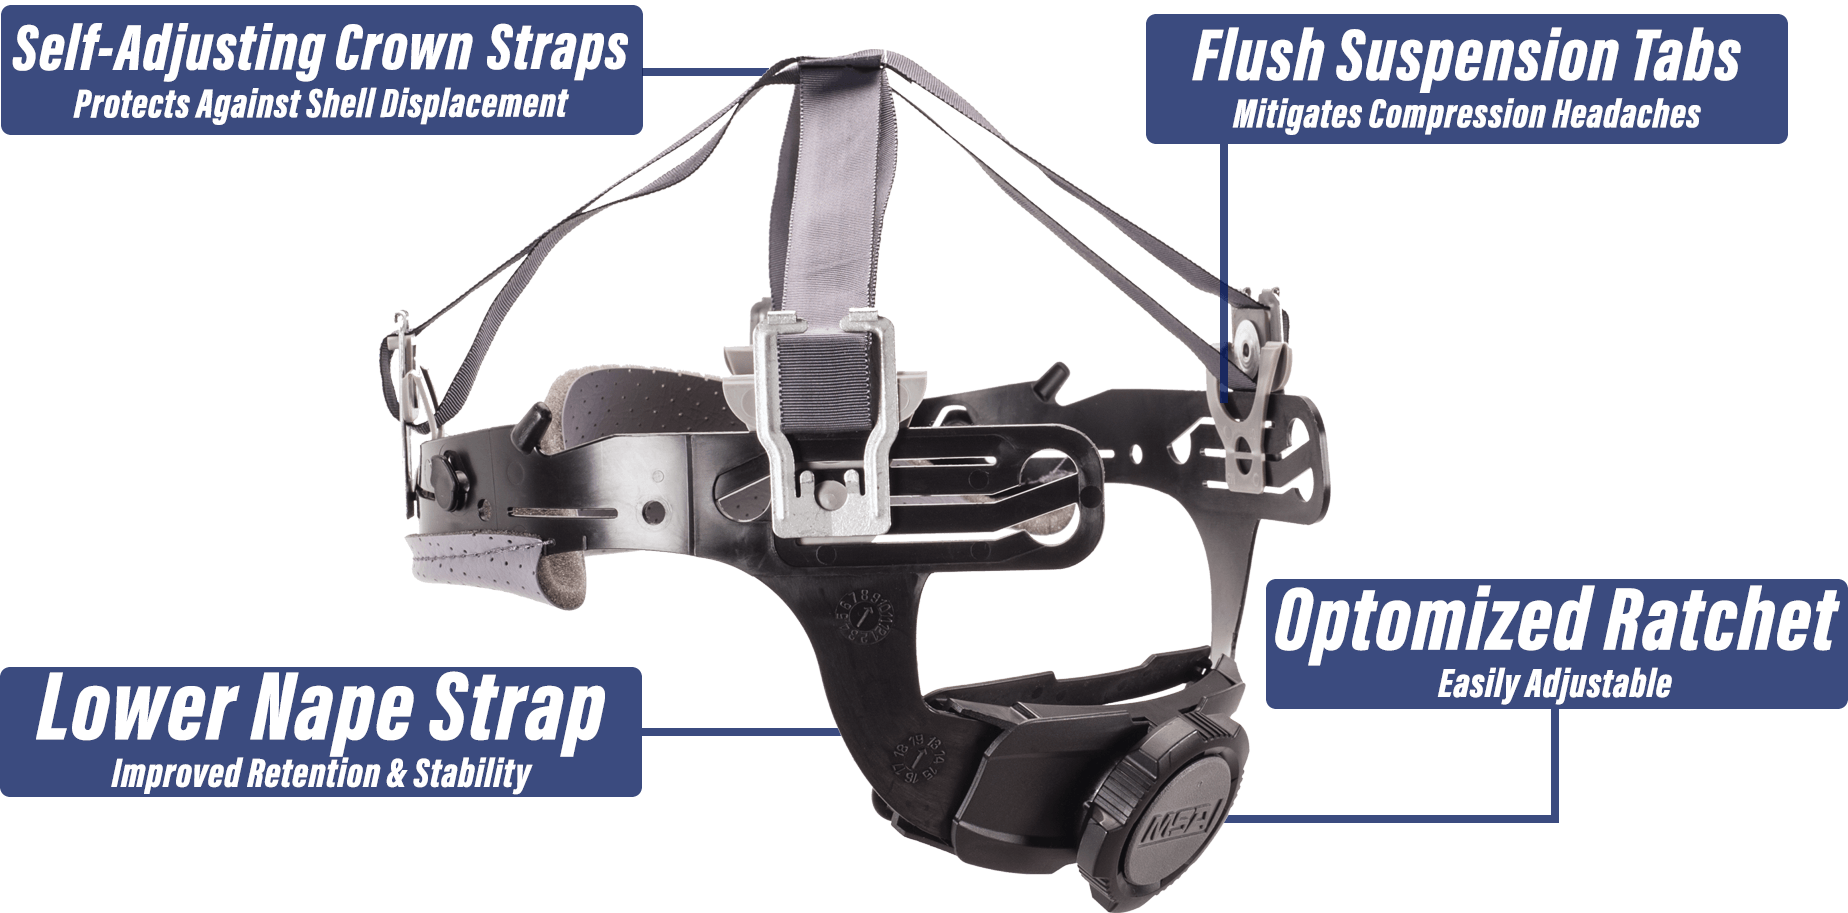 MSA Fas-Trac® III suspension provides innovative comfort, breathability, and full customization for all shapes and sizes